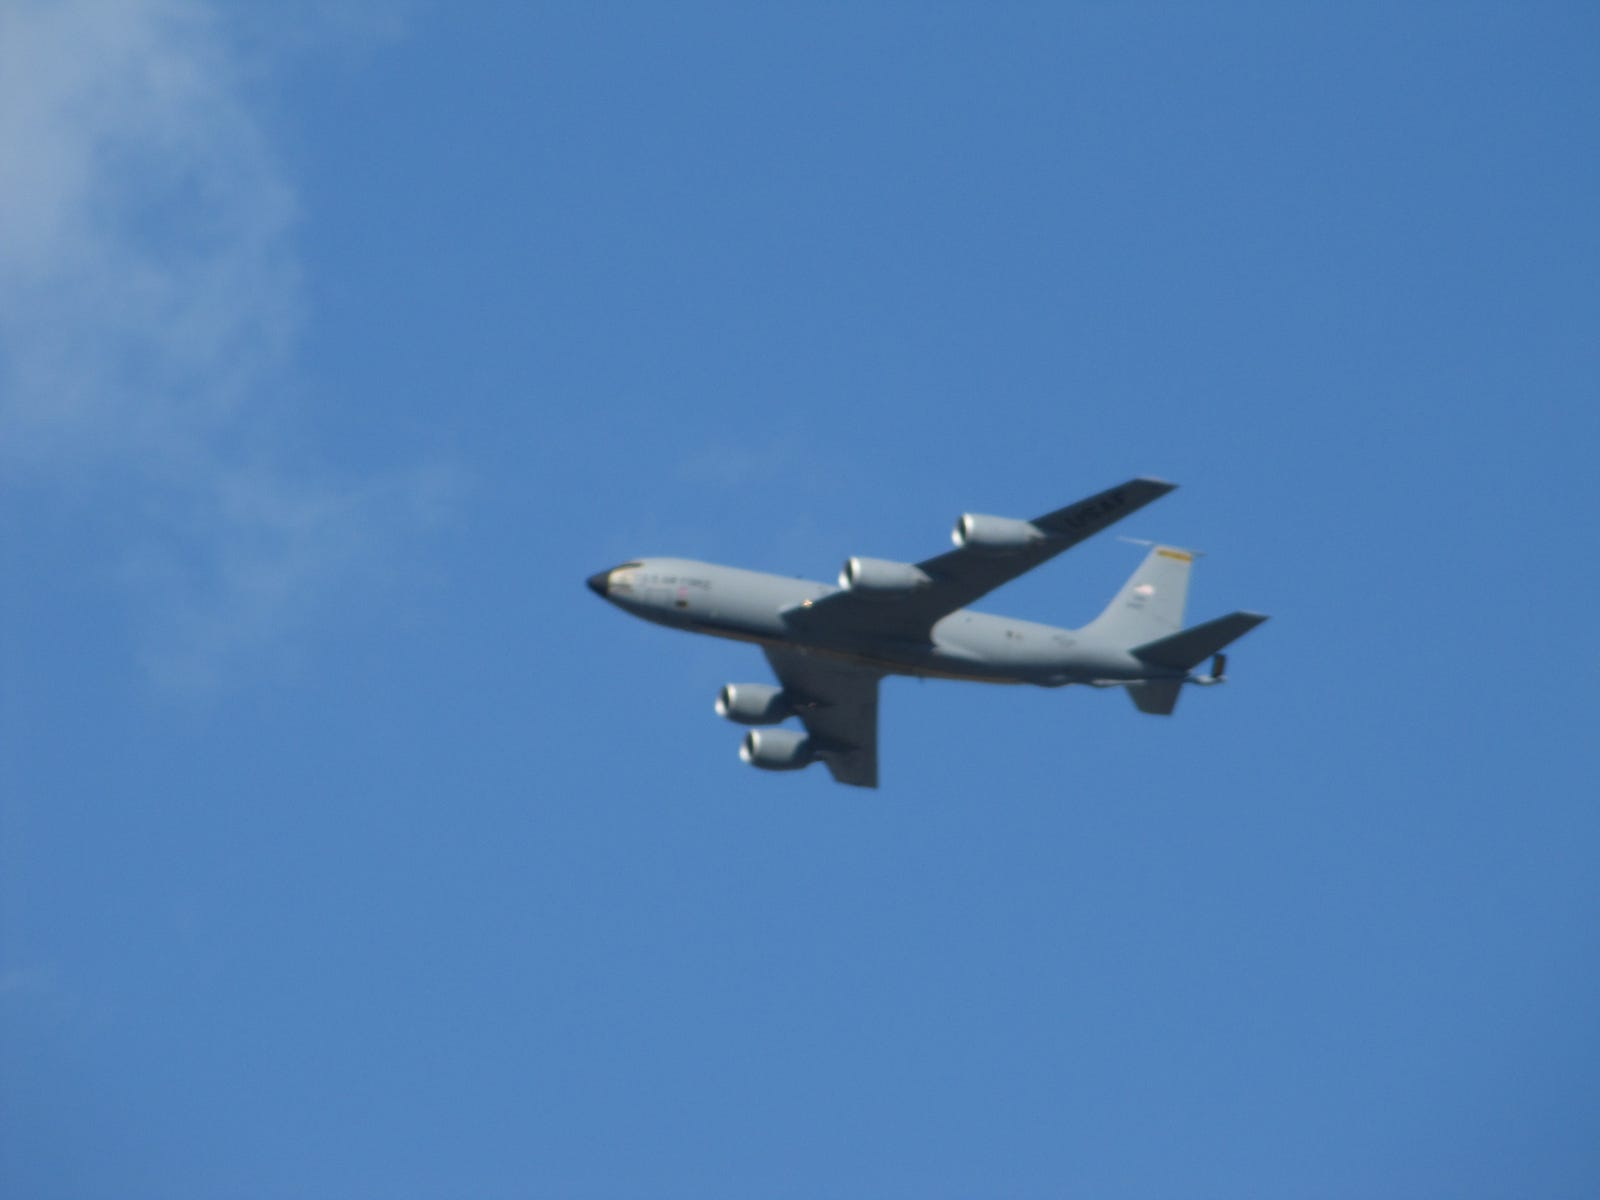 Special guest appearance by a 171st ARW KC-135!